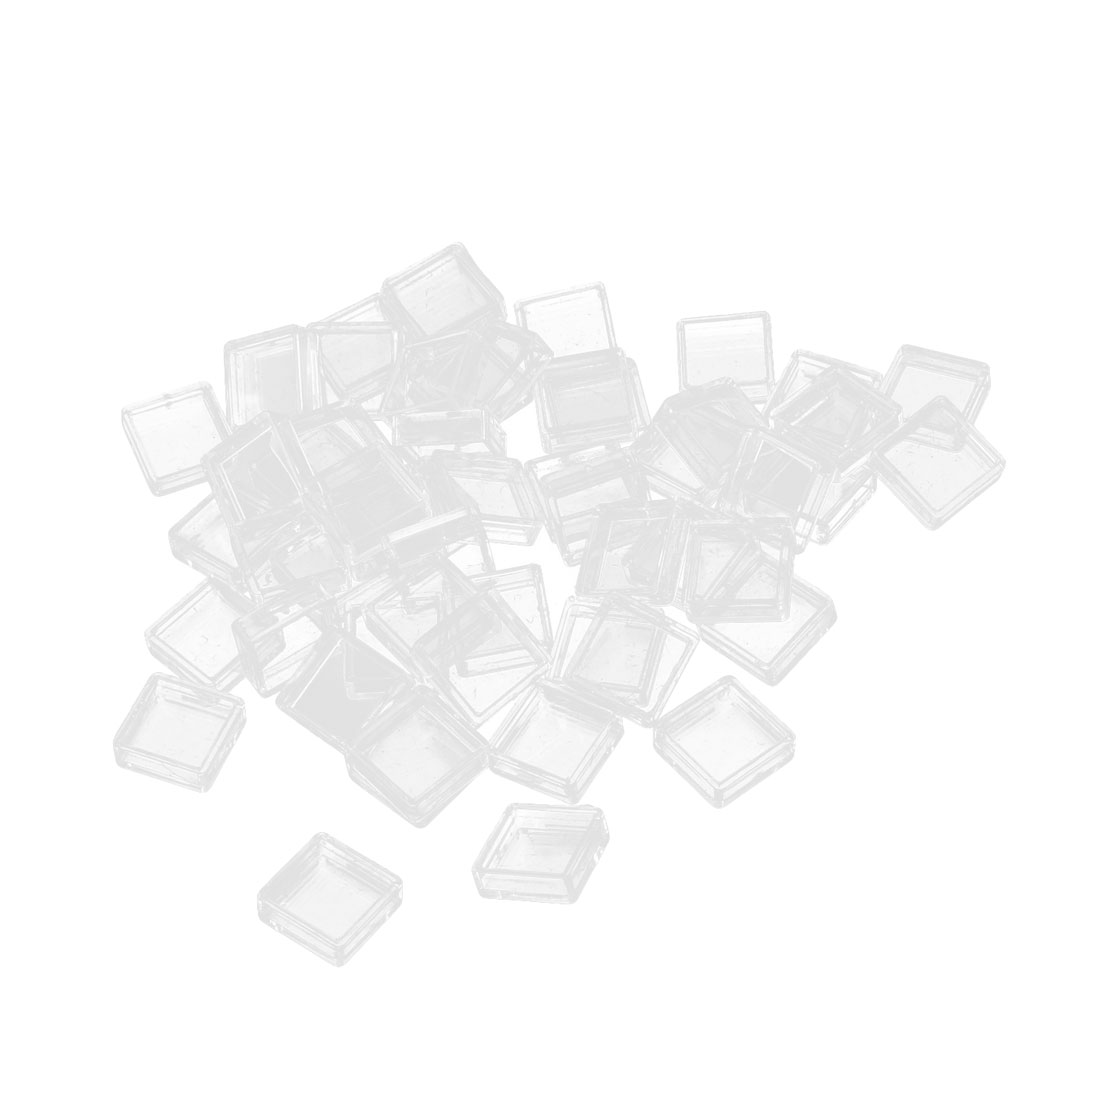 55pcs Clear Plastic Square Tactile PushButton Switch Tact Button Caps Keycaps Covers Protector